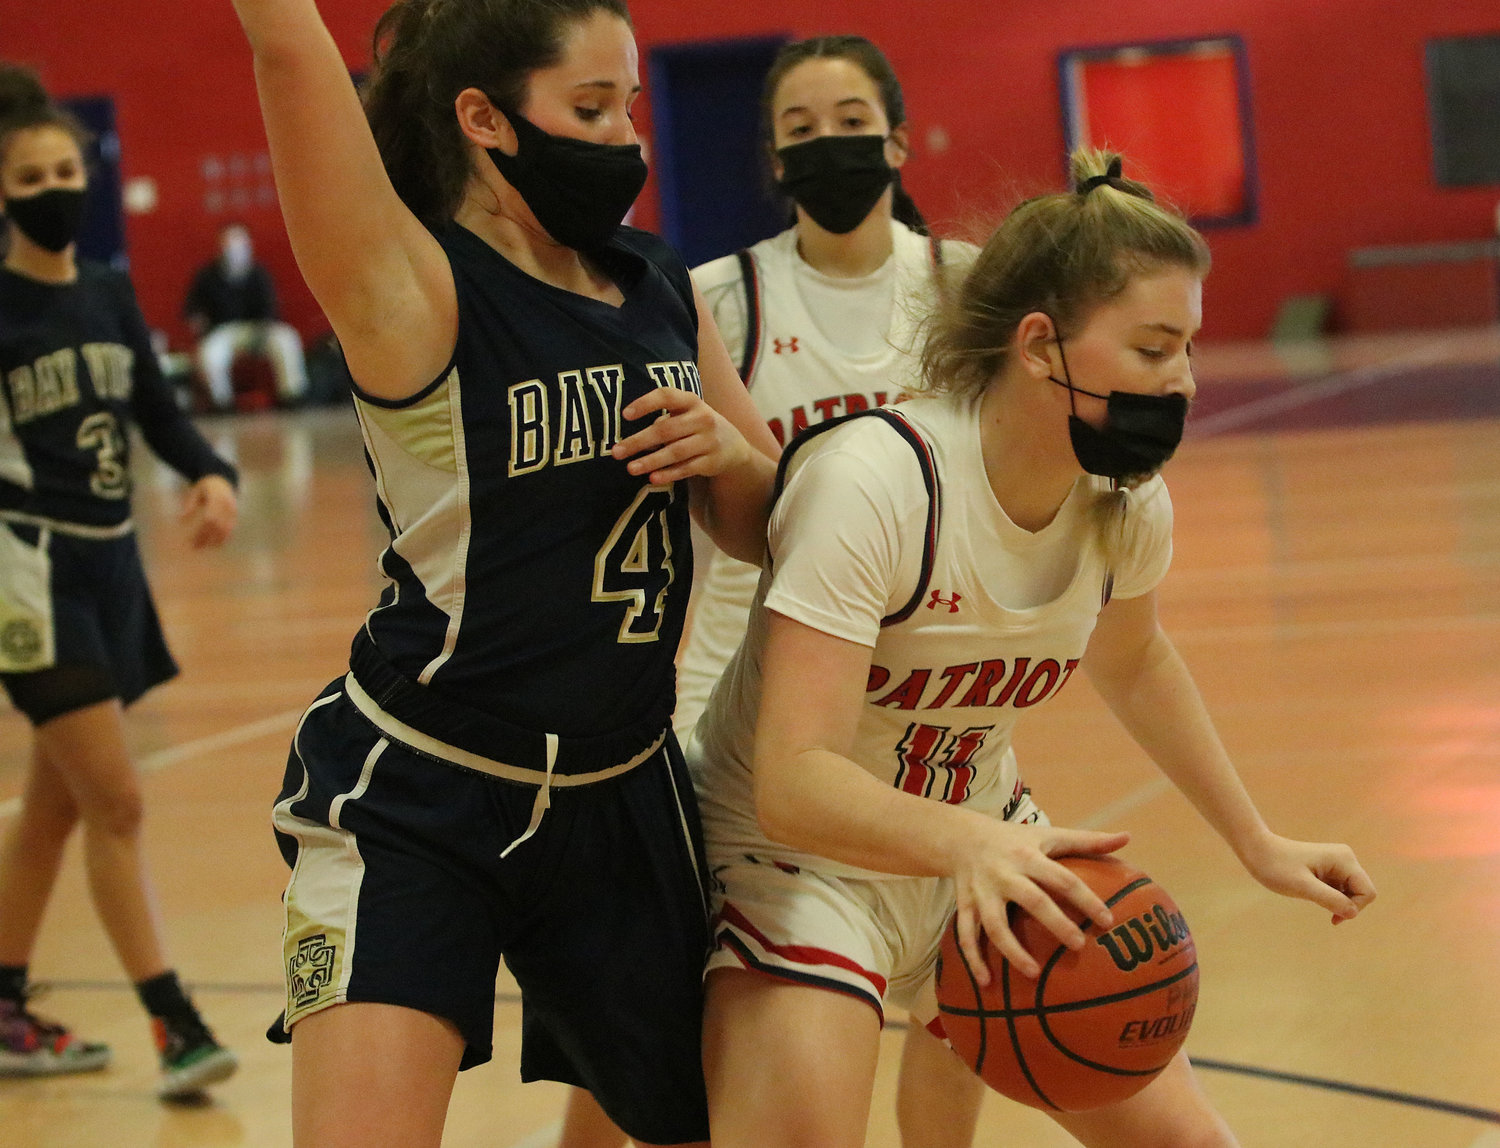 Patriots forward Maeve Tullson puts the ball on the floor in the offensive zone, with Olivia Durant looking on.